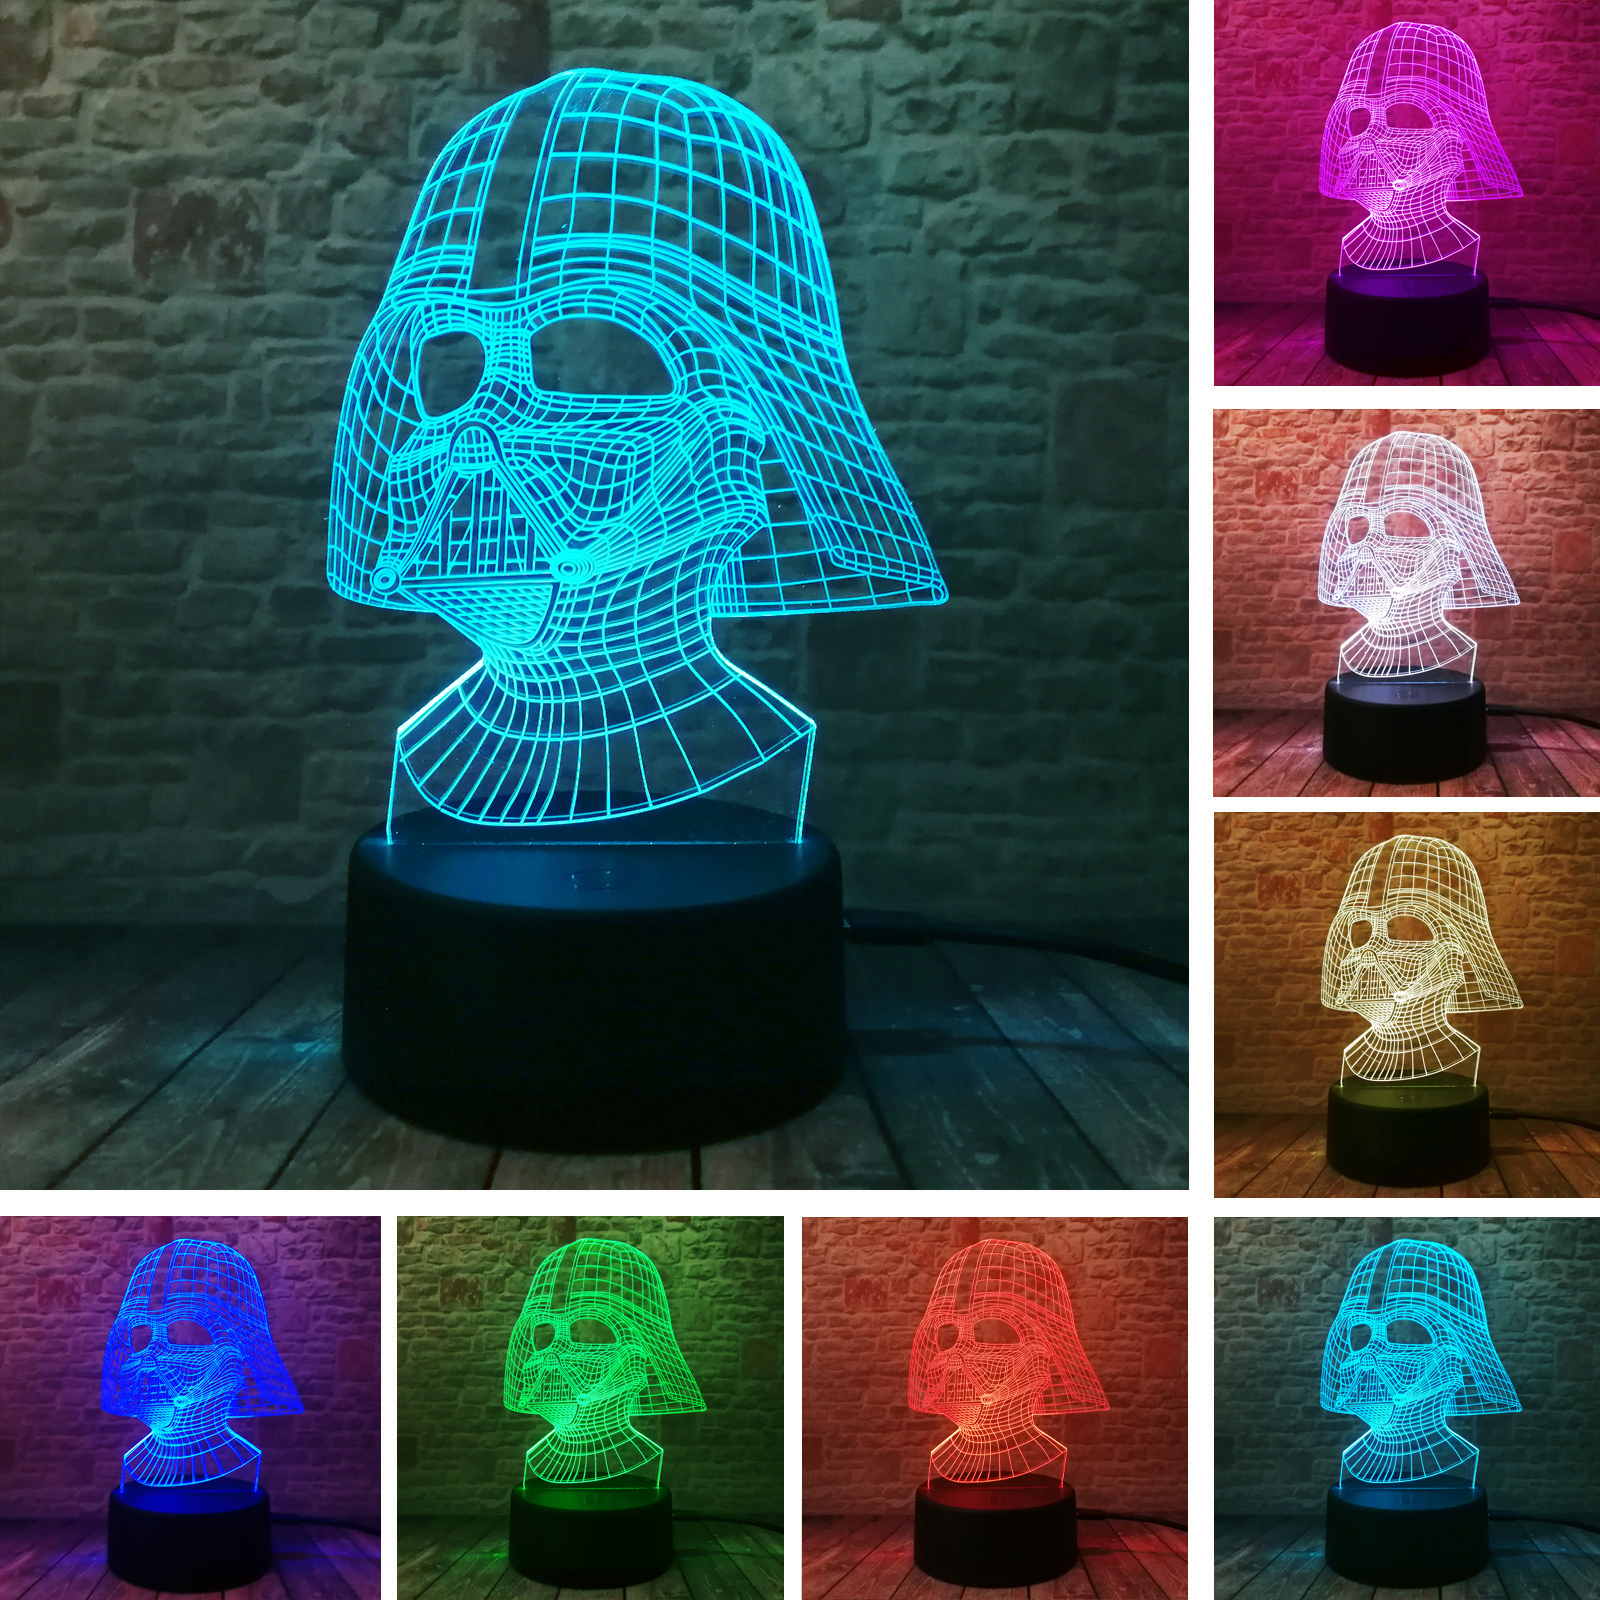 3 Pattern and 16 Color Change Decor Lamp Star Wars Toys and Gifts for Boys Girls and Any Star Wars Fans 3D Illusion Star Wars Night Light for Kids